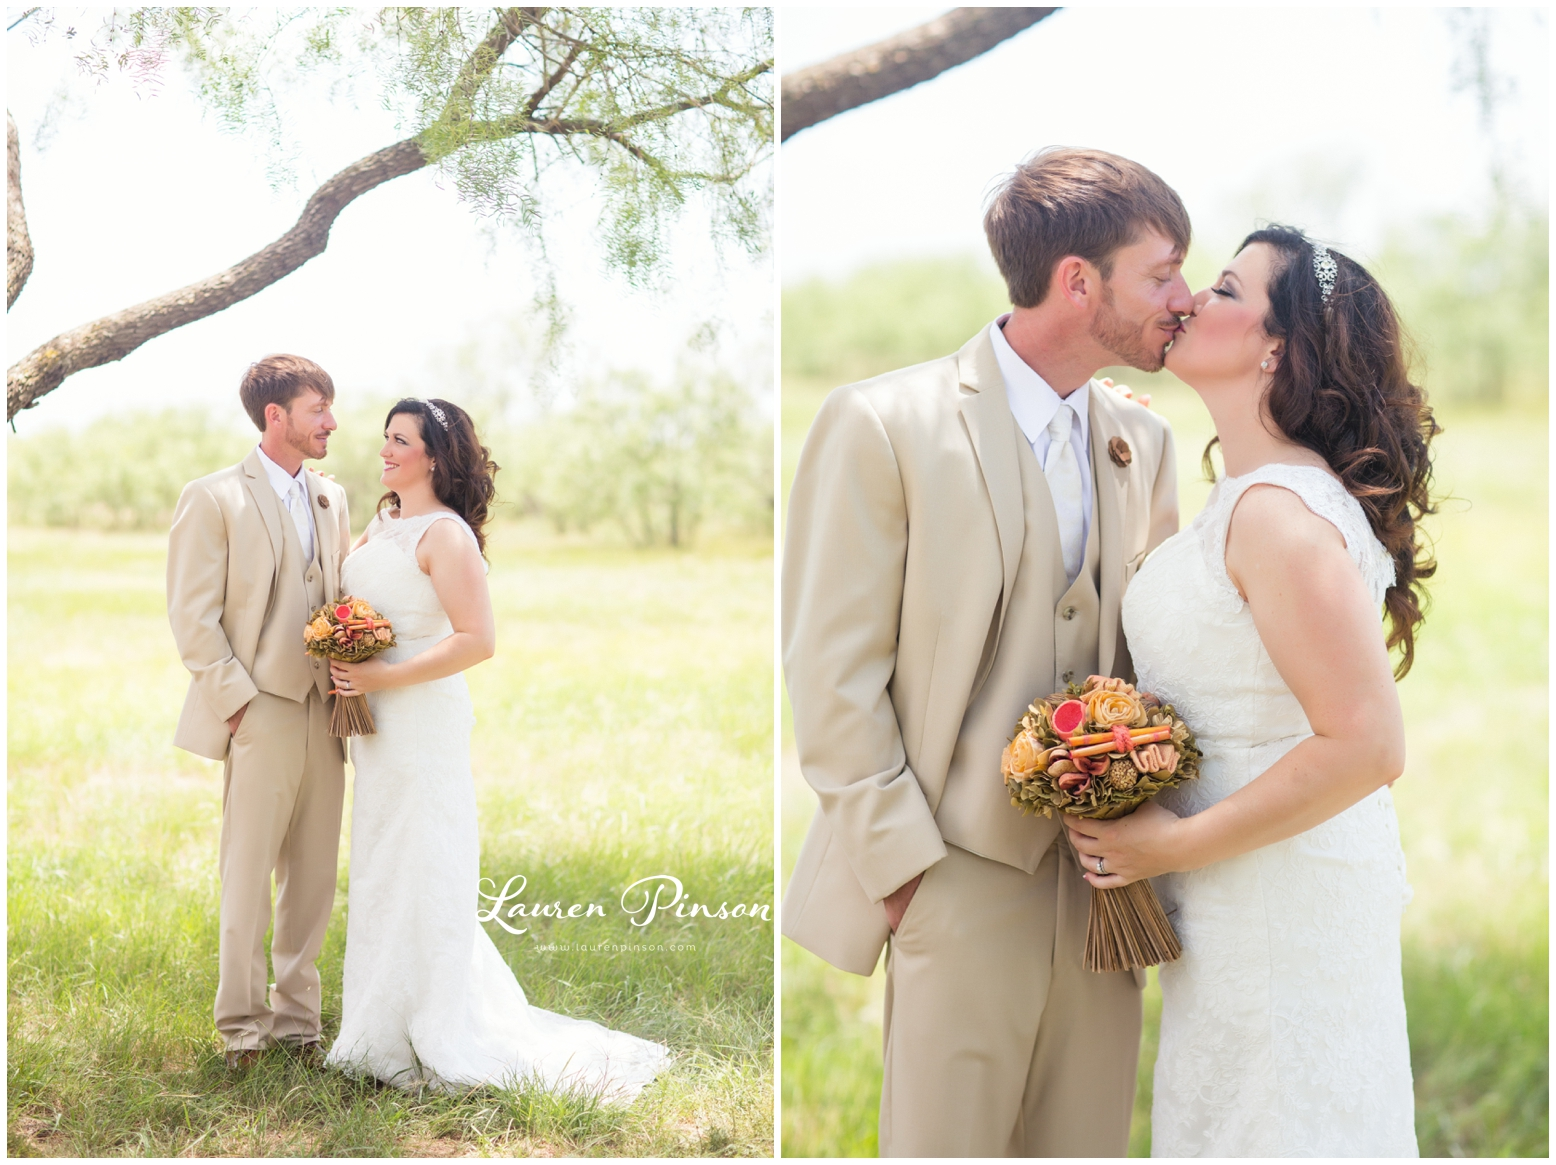 wichita-falls-coyote-ranch-resort-wedding-texas-photography-family-ceremony-balloons-rustic-lace_0323.jpg